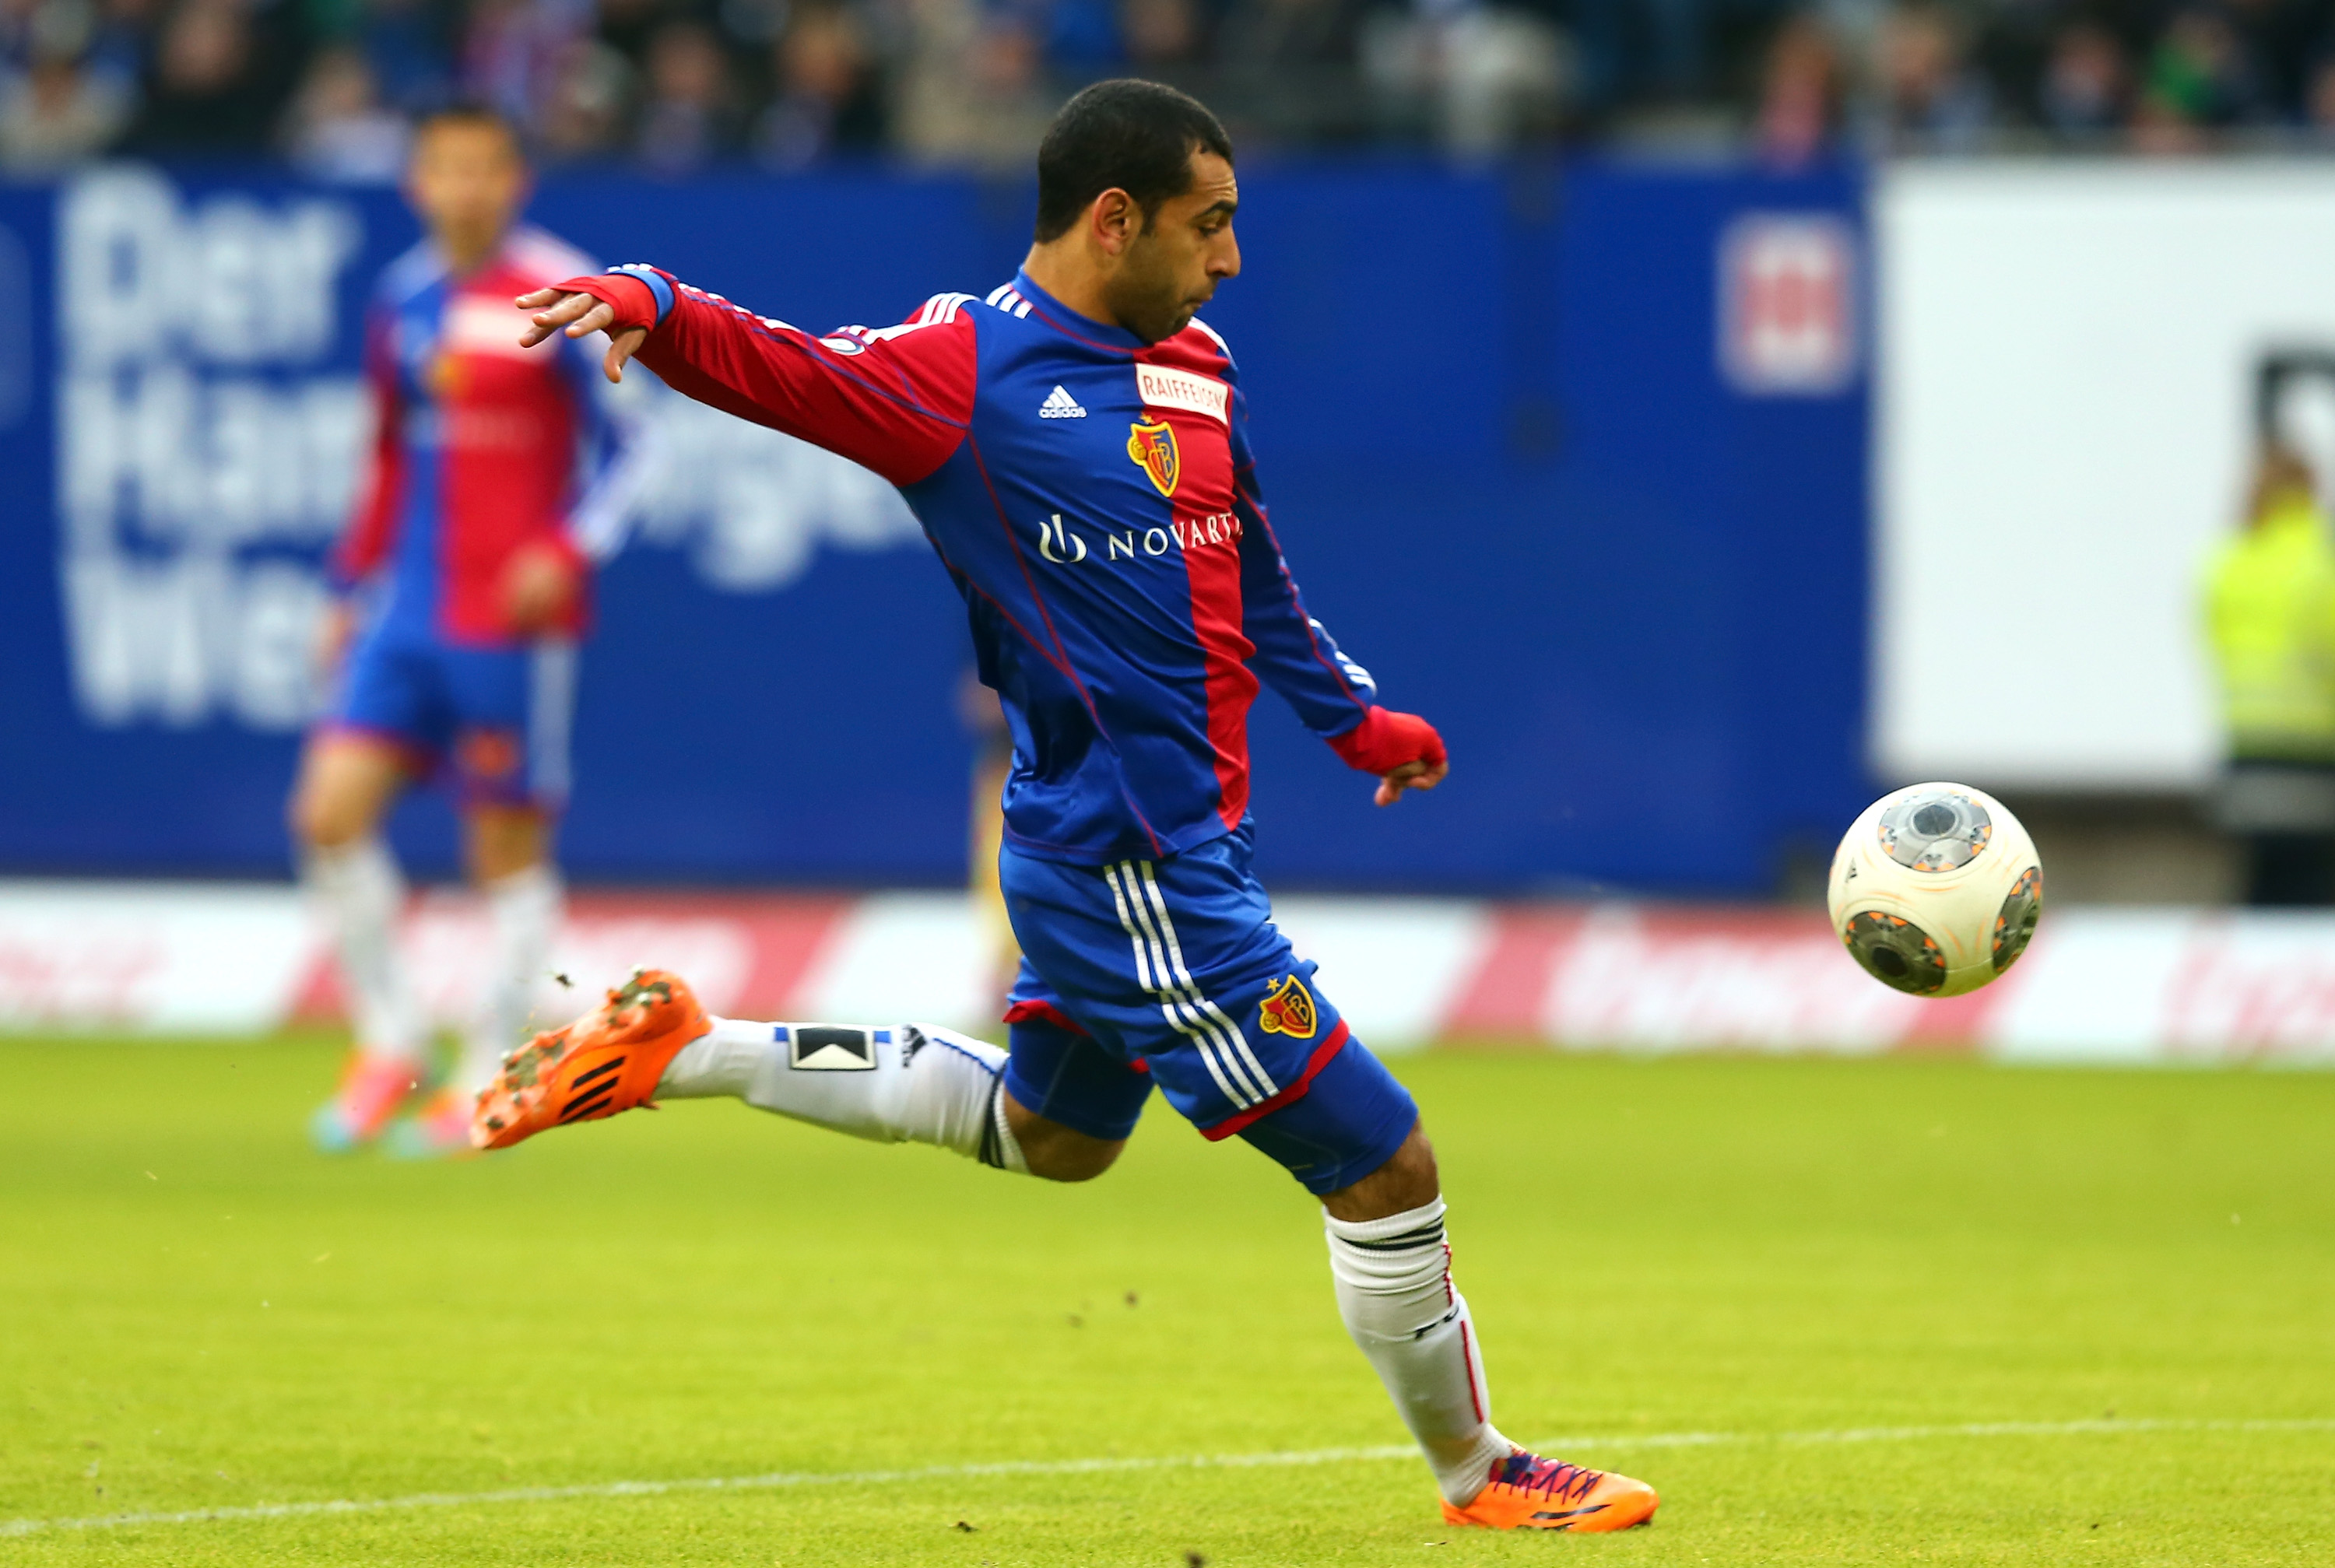 Hamburger SV v FC Basel - Friendly Match